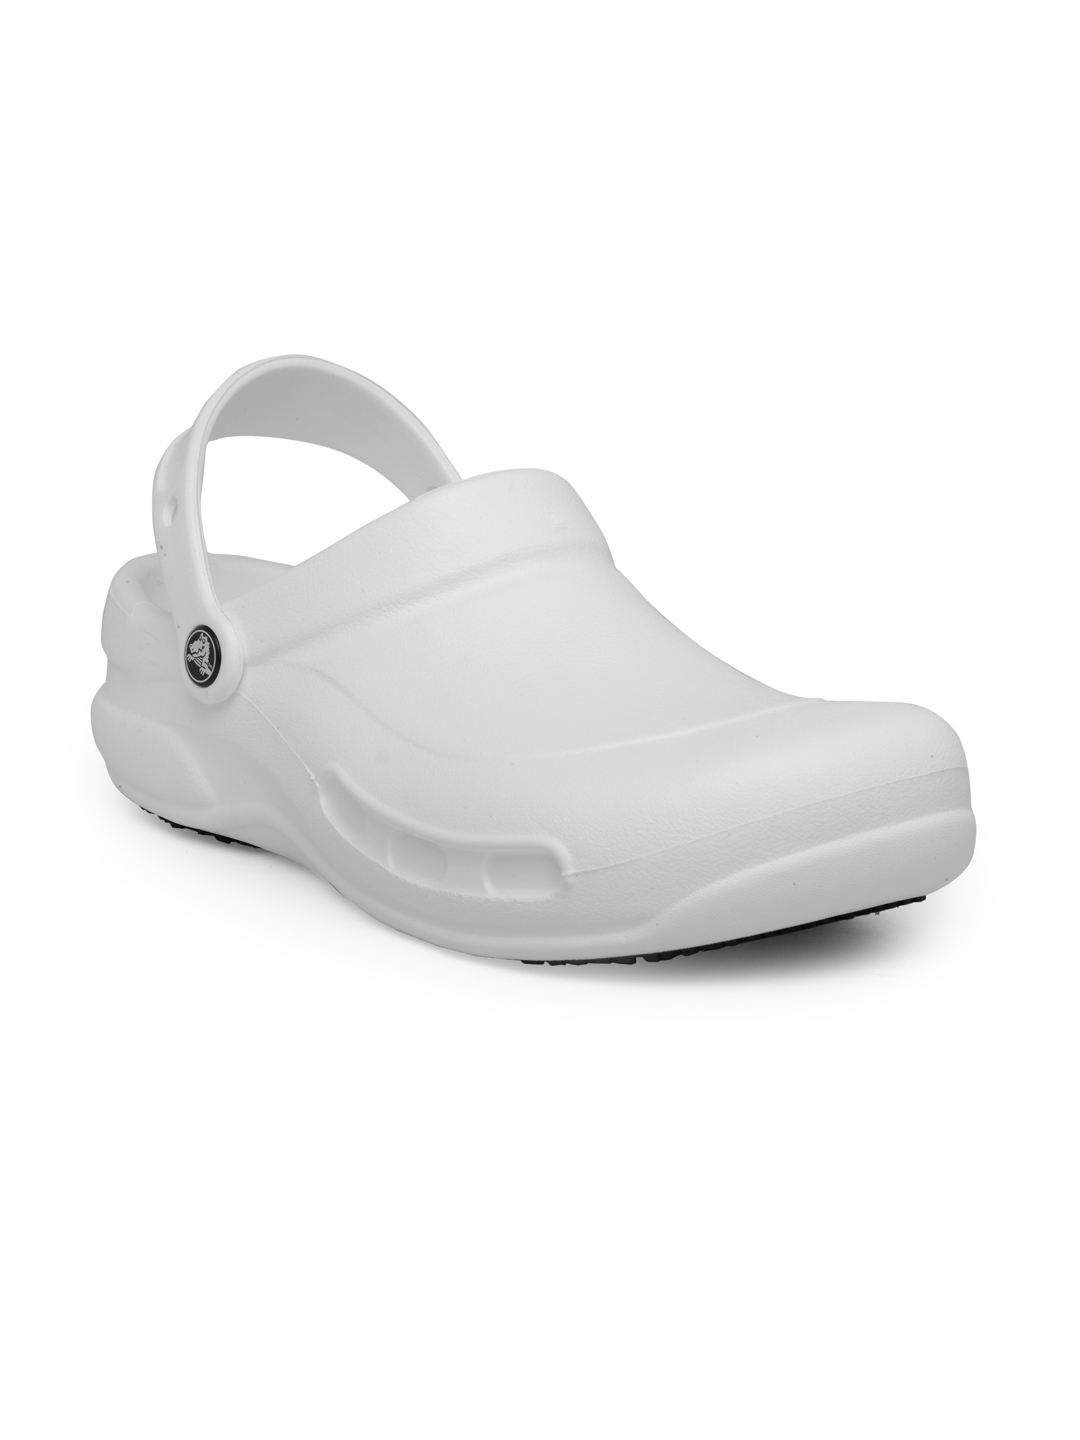 2306603 For Clogs Crocs Men Sandals Buy White Myntra qwpg6WY for ... 2c755fa93492